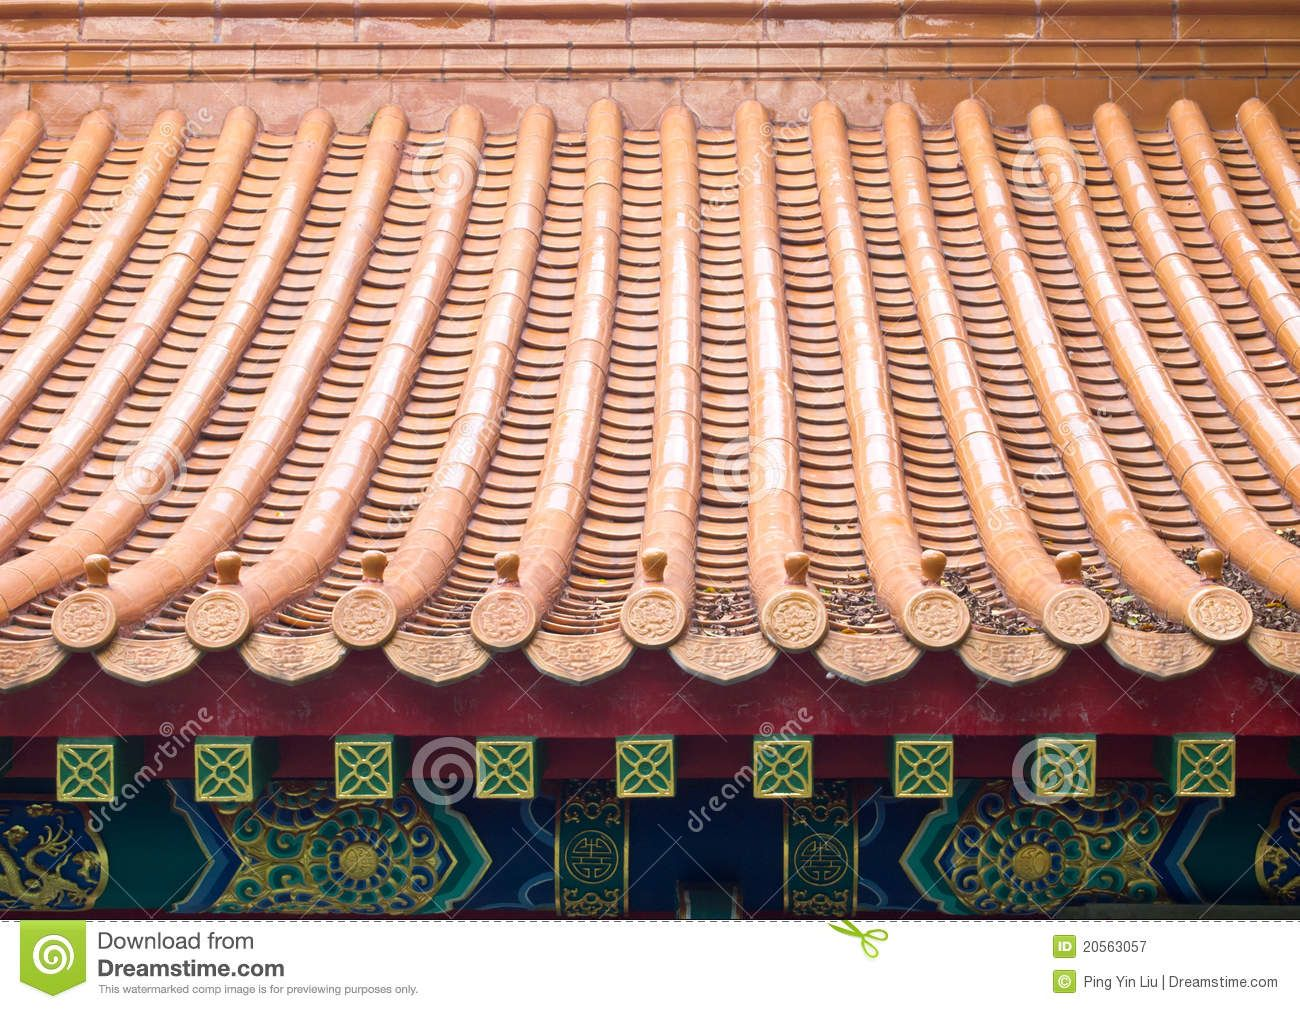 Chinese roof tiles 20563057g 13001009 world design photo about ceramic roof tiles of chinese house 20563057 dailygadgetfo Images